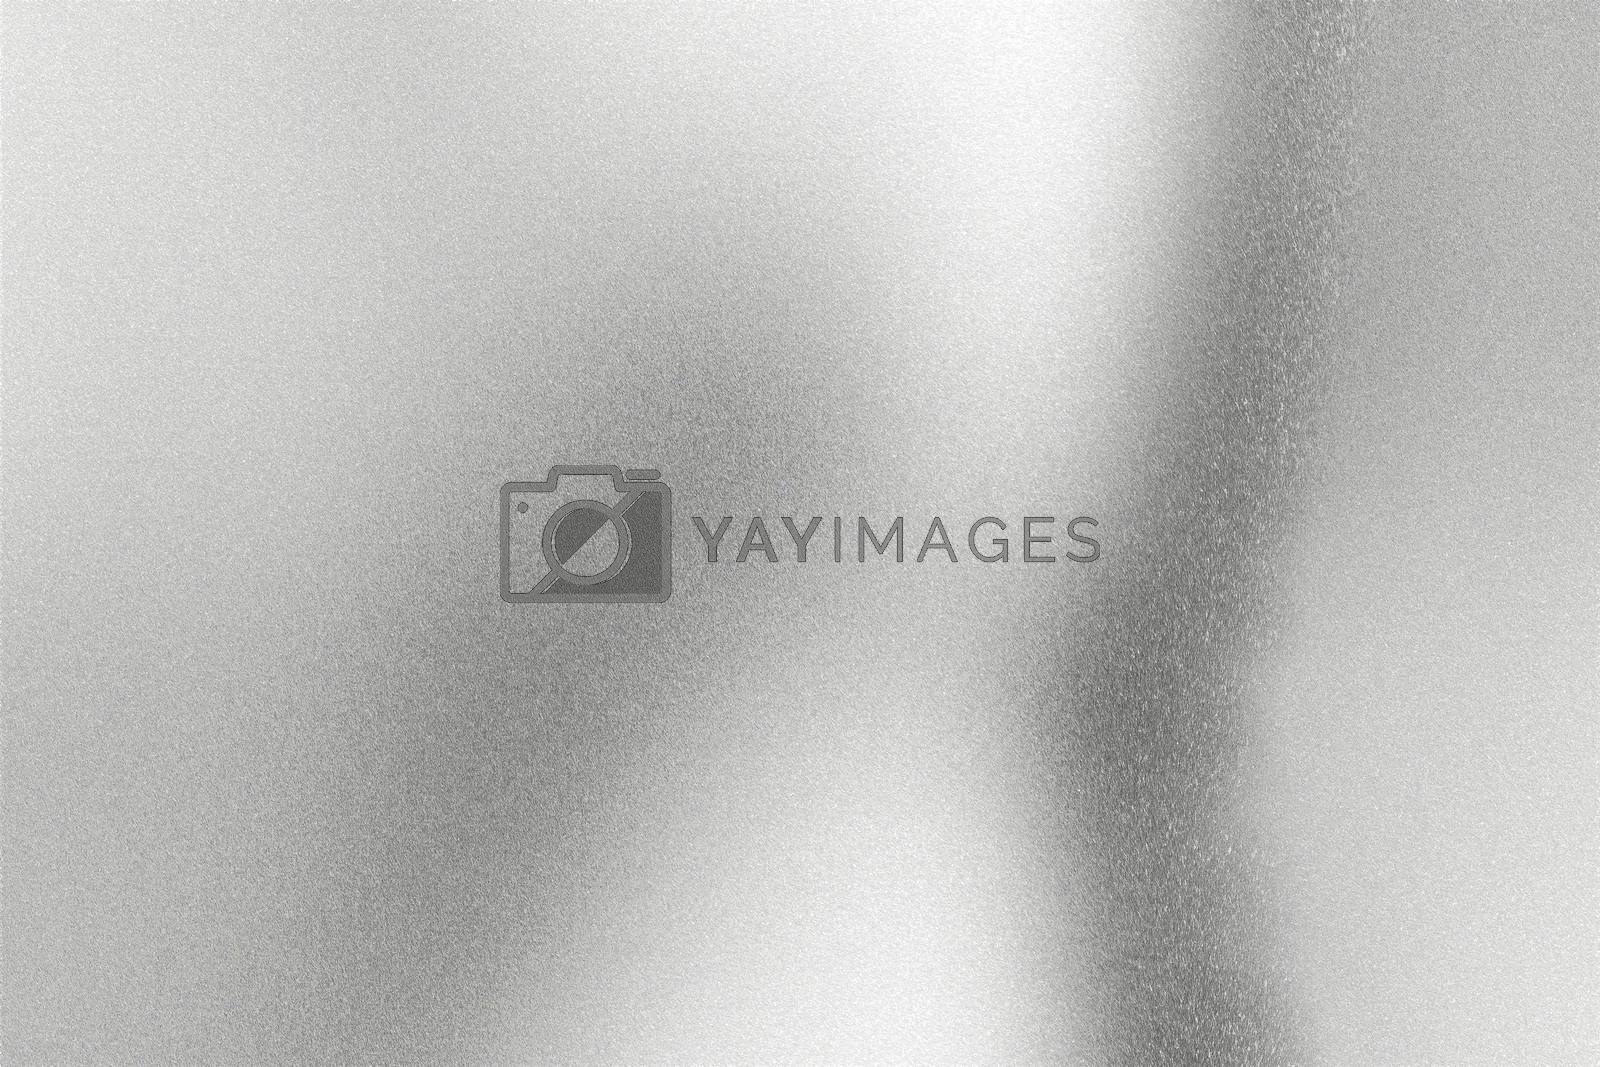 Royalty free image of Light shining on silver wave metal wall, abstract texture background by mouu007